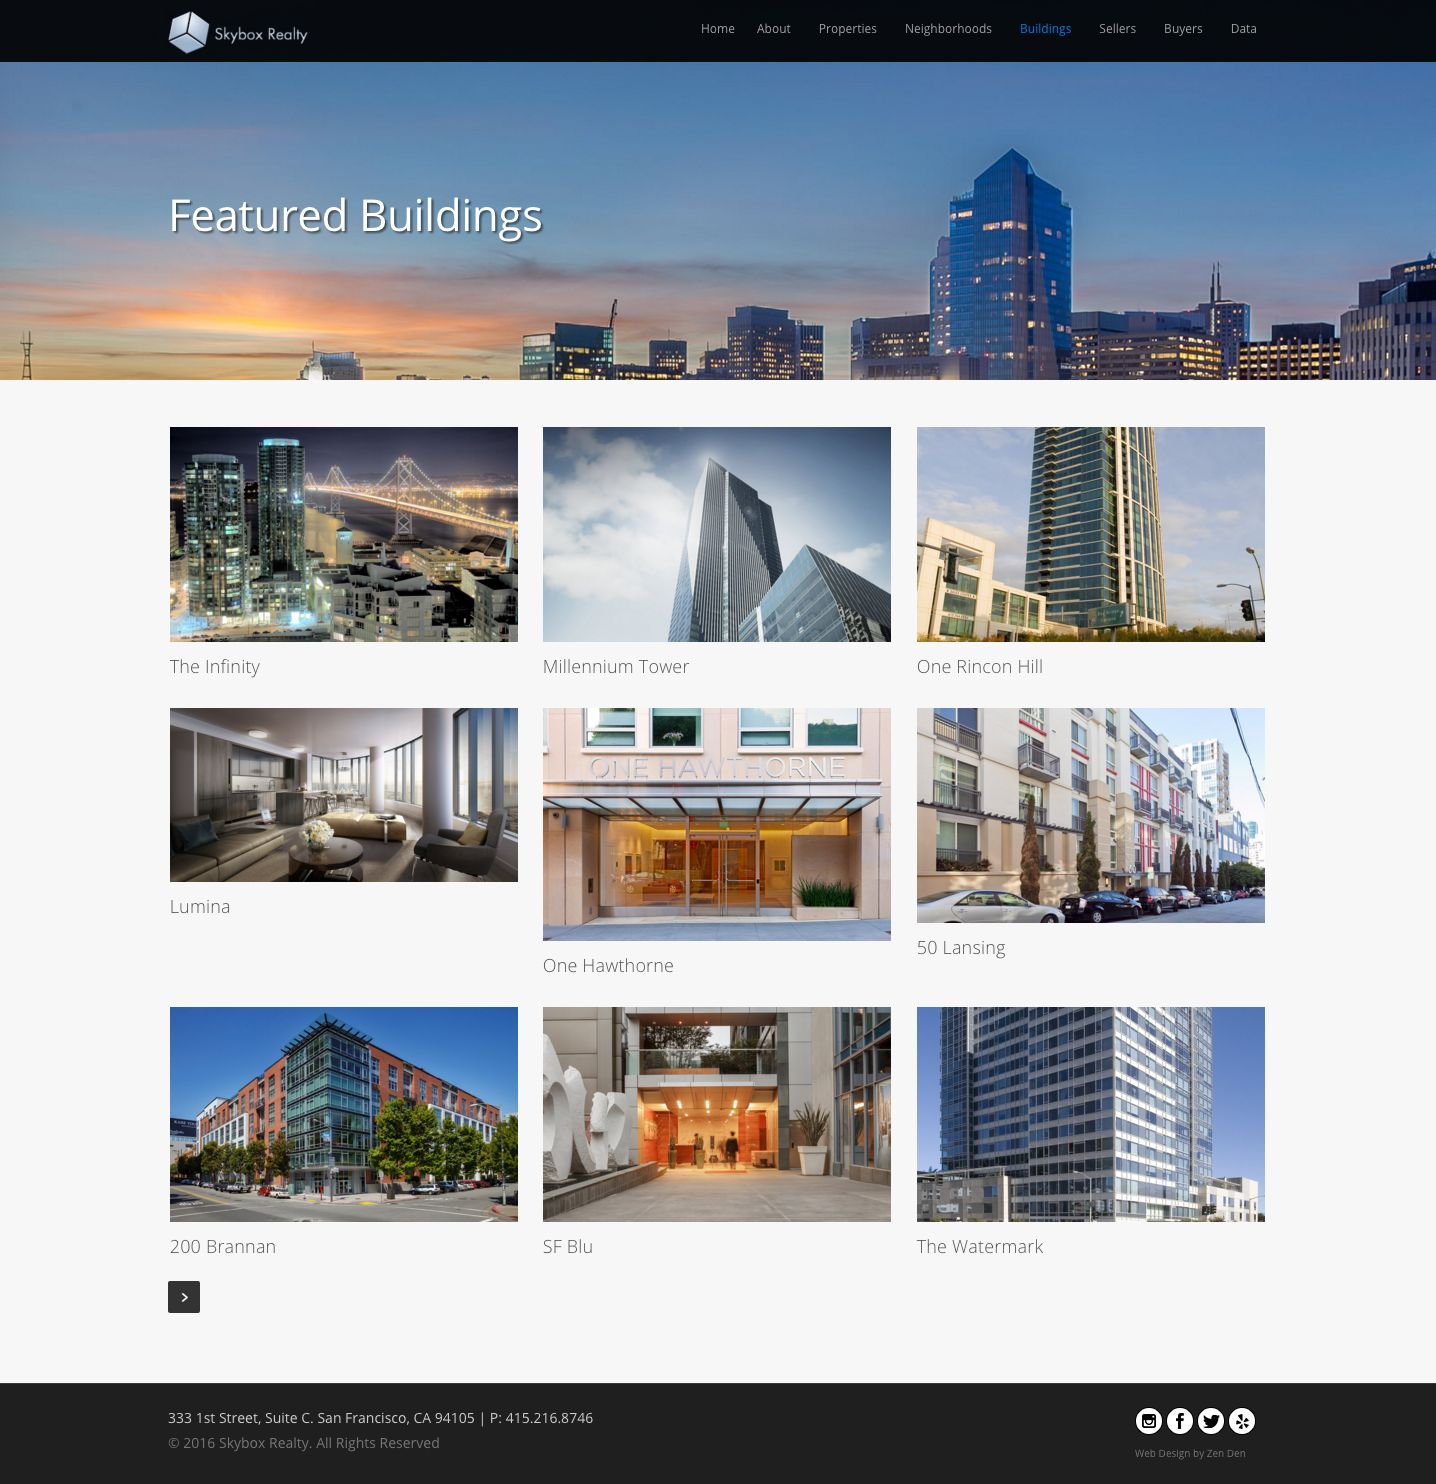 Website design for realtors skybox realty zen den web for Home design websites